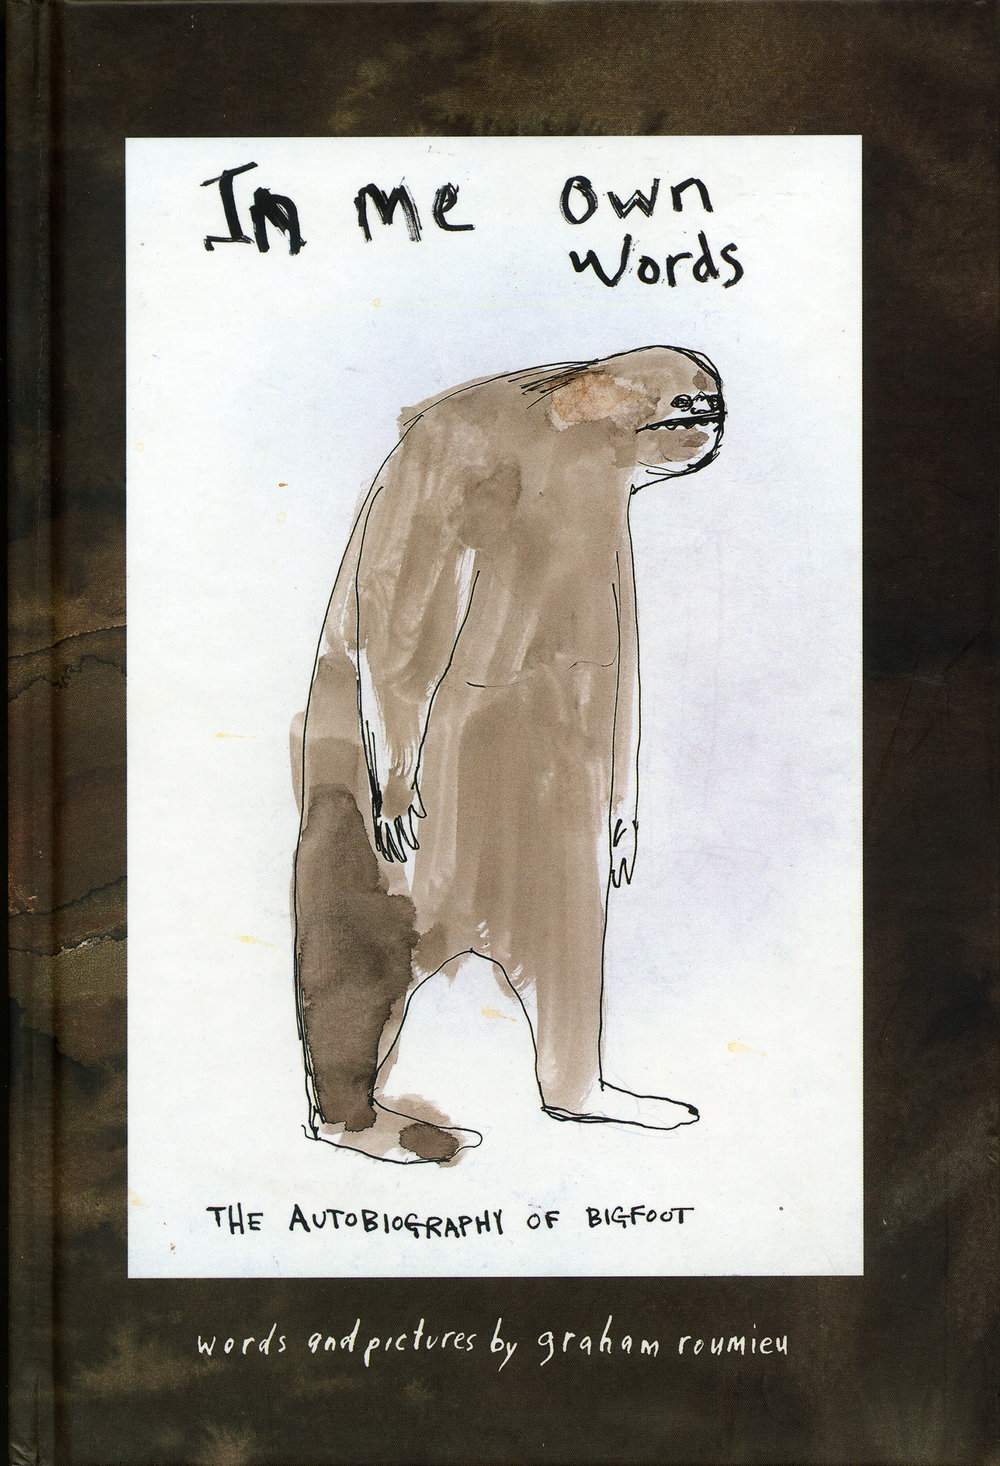 AI 20 2001 - ARTIST: Graham RoumieuTITLE: In me Own Words [Series, 3 of 3]